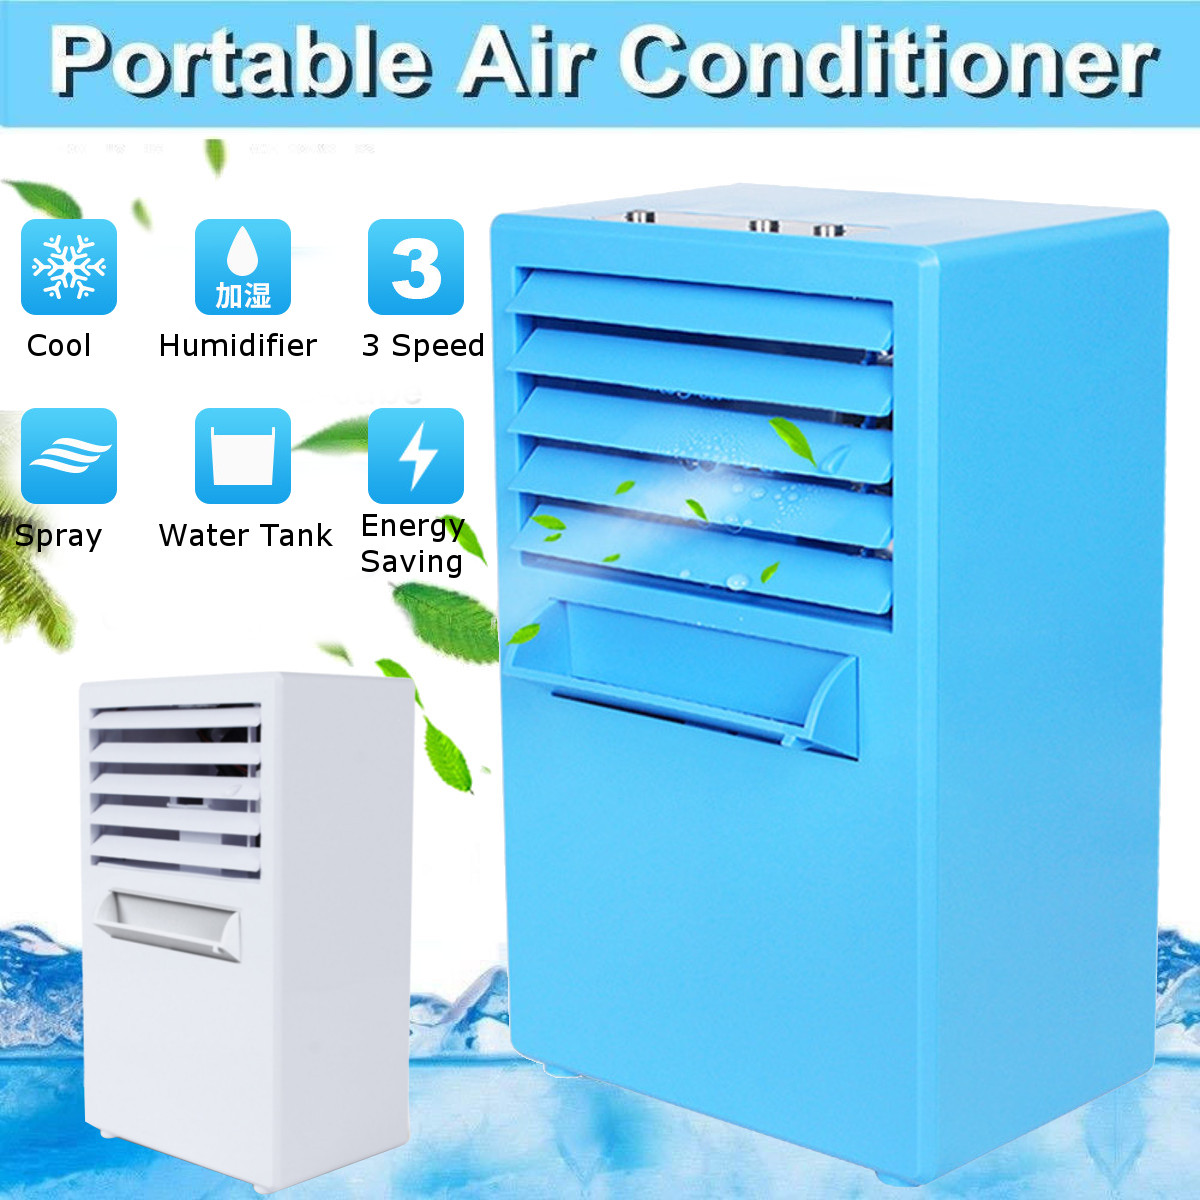 Air Cooler Desktop Mini Air Conditioner Fan Humidifier Moisturizing Device Portable Small Air Conditioning Fans Free ShippingAir Cooler Desktop Mini Air Conditioner Fan Humidifier Moisturizing Device Portable Small Air Conditioning Fans Free Shipping